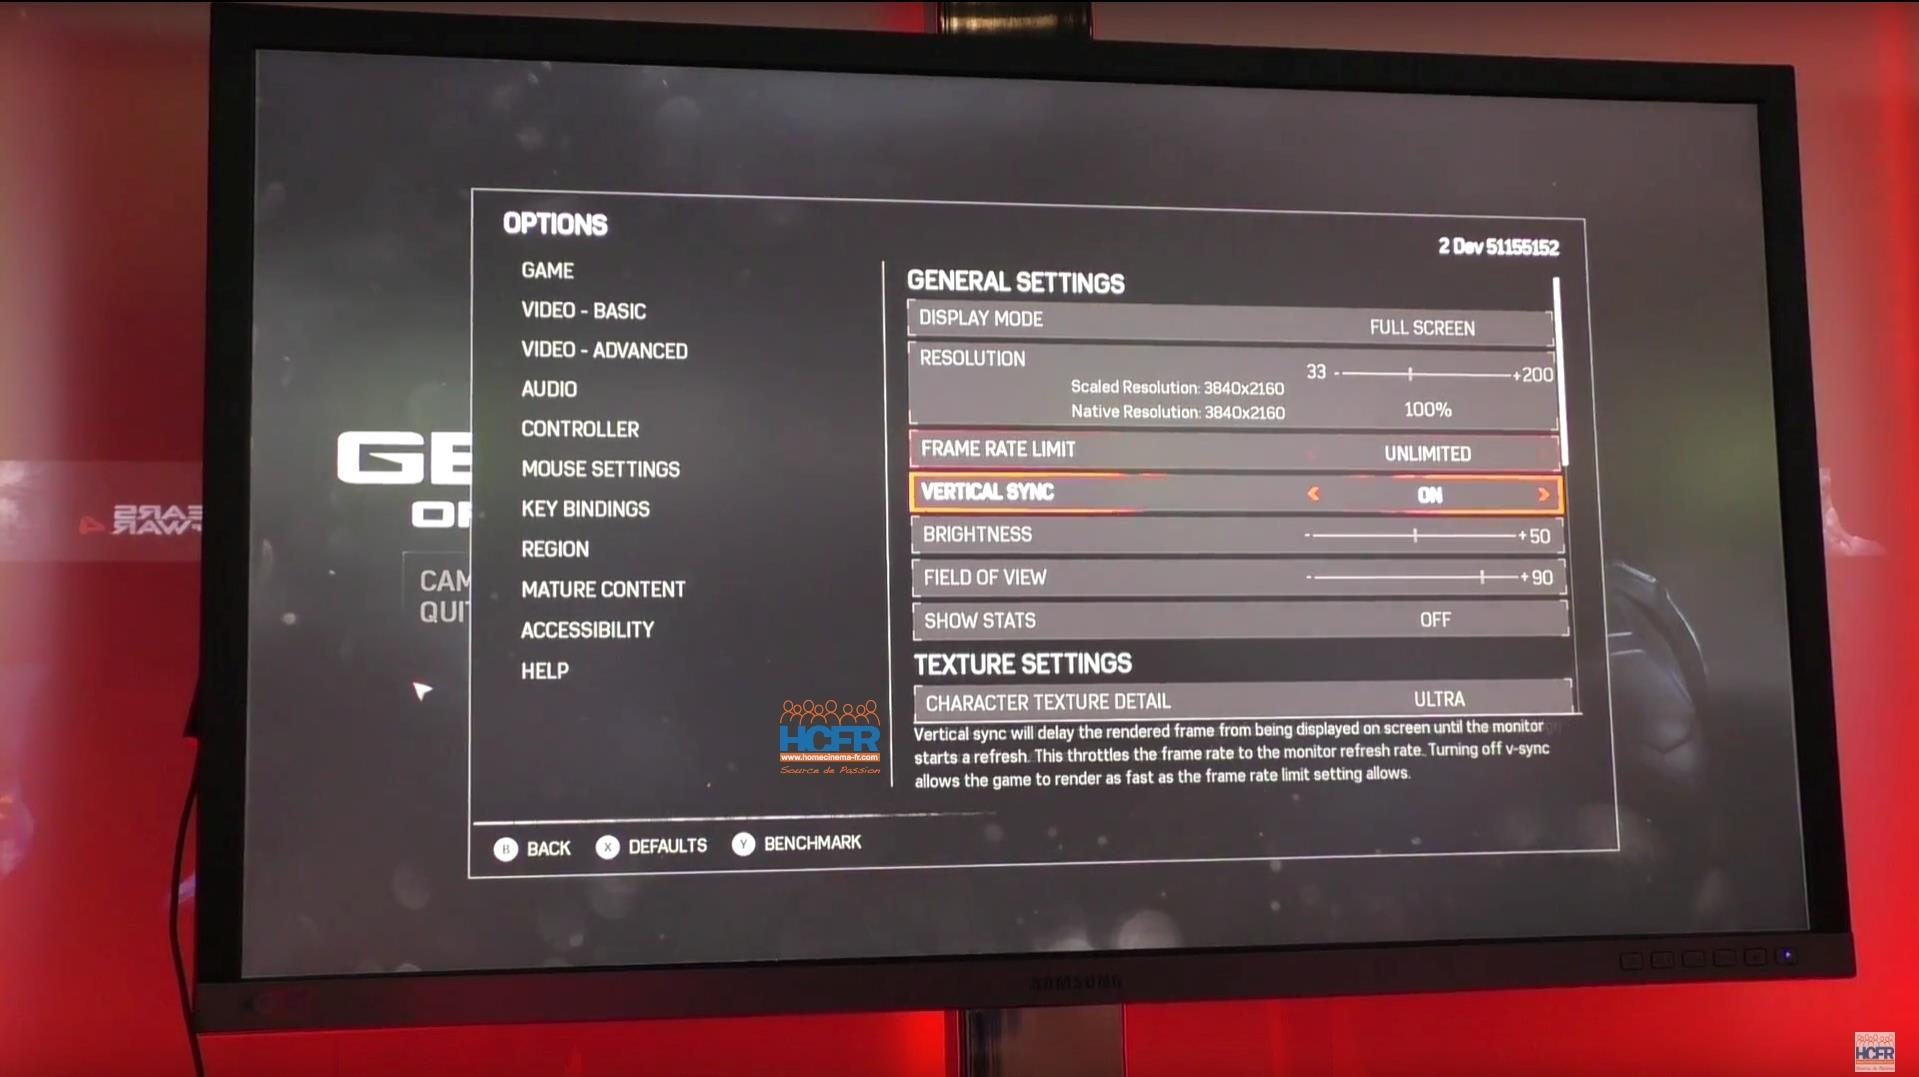 The PC graphics settings menu for Gears of War 4 is a bit ridiculous